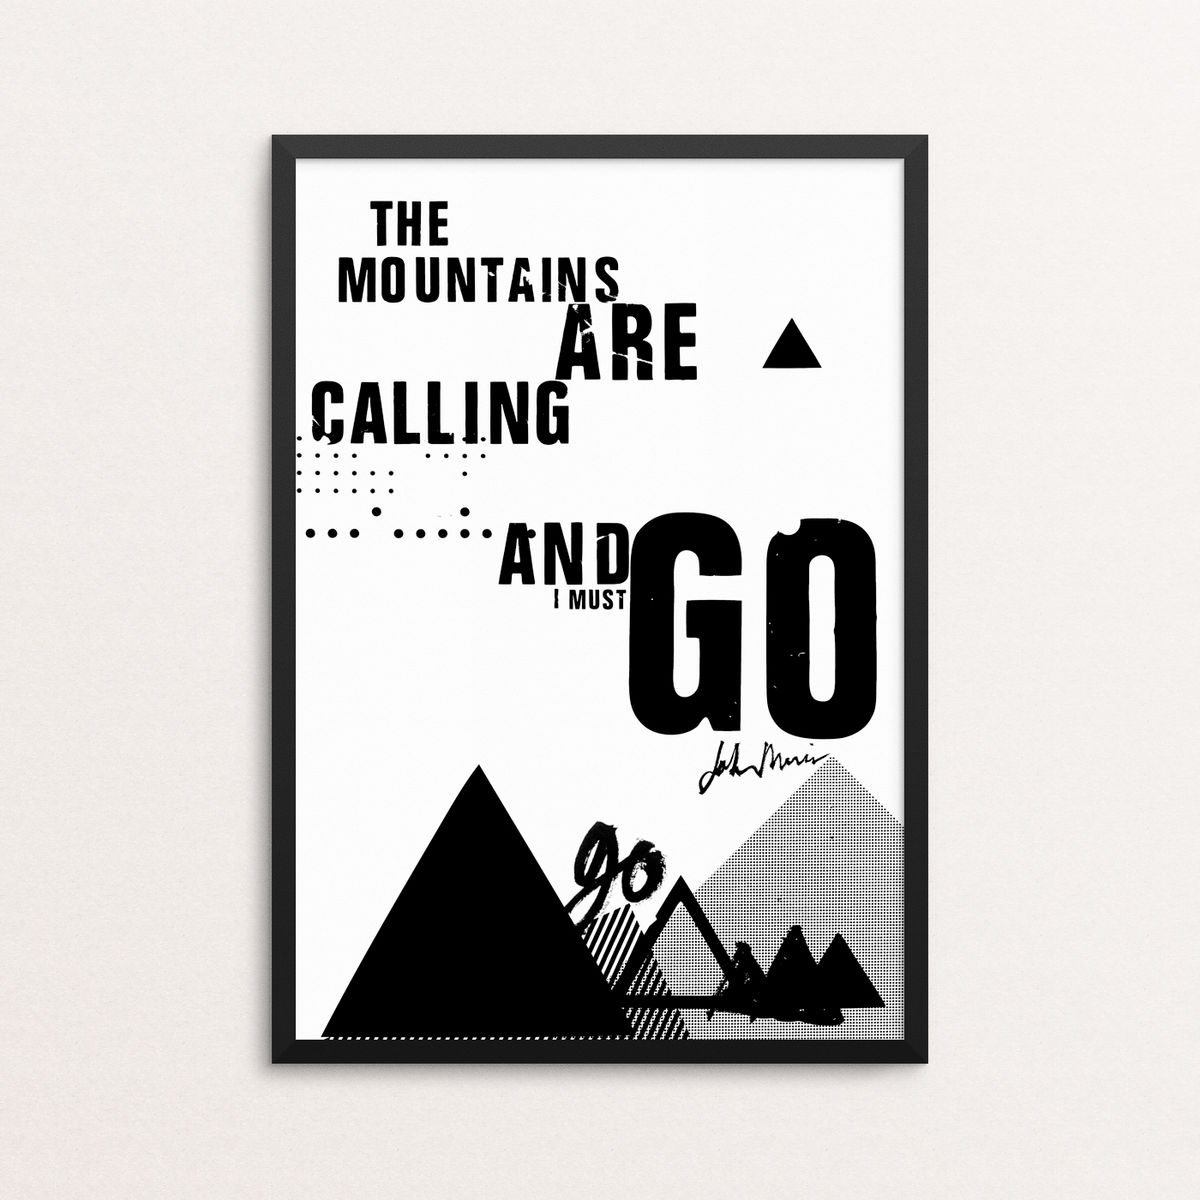 The Mountains Are Calling And I Must Go - Giclee Print - product image